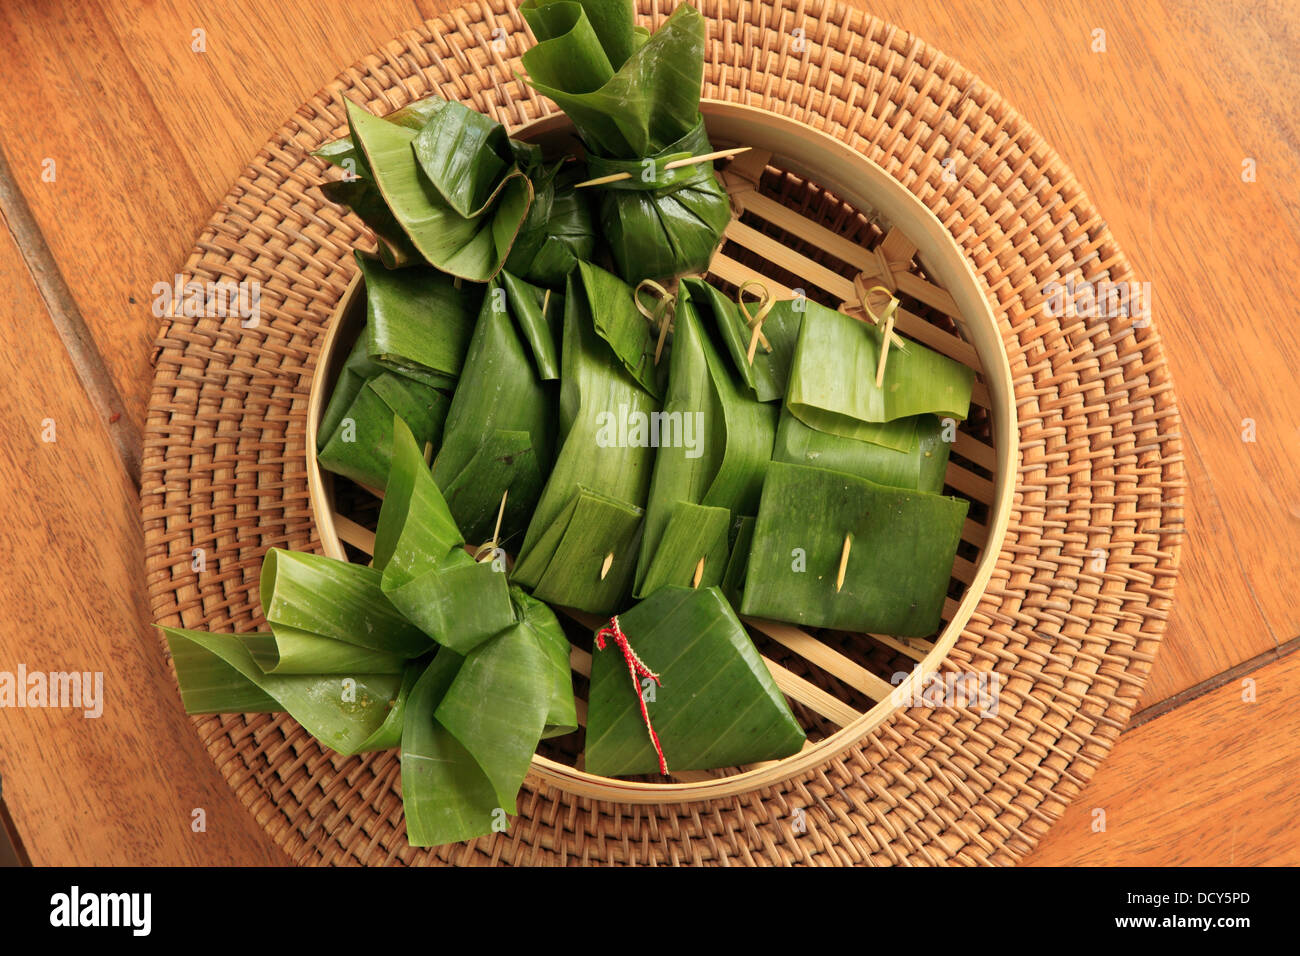 food banana leaves stockfotos food banana leaves bilder. Black Bedroom Furniture Sets. Home Design Ideas